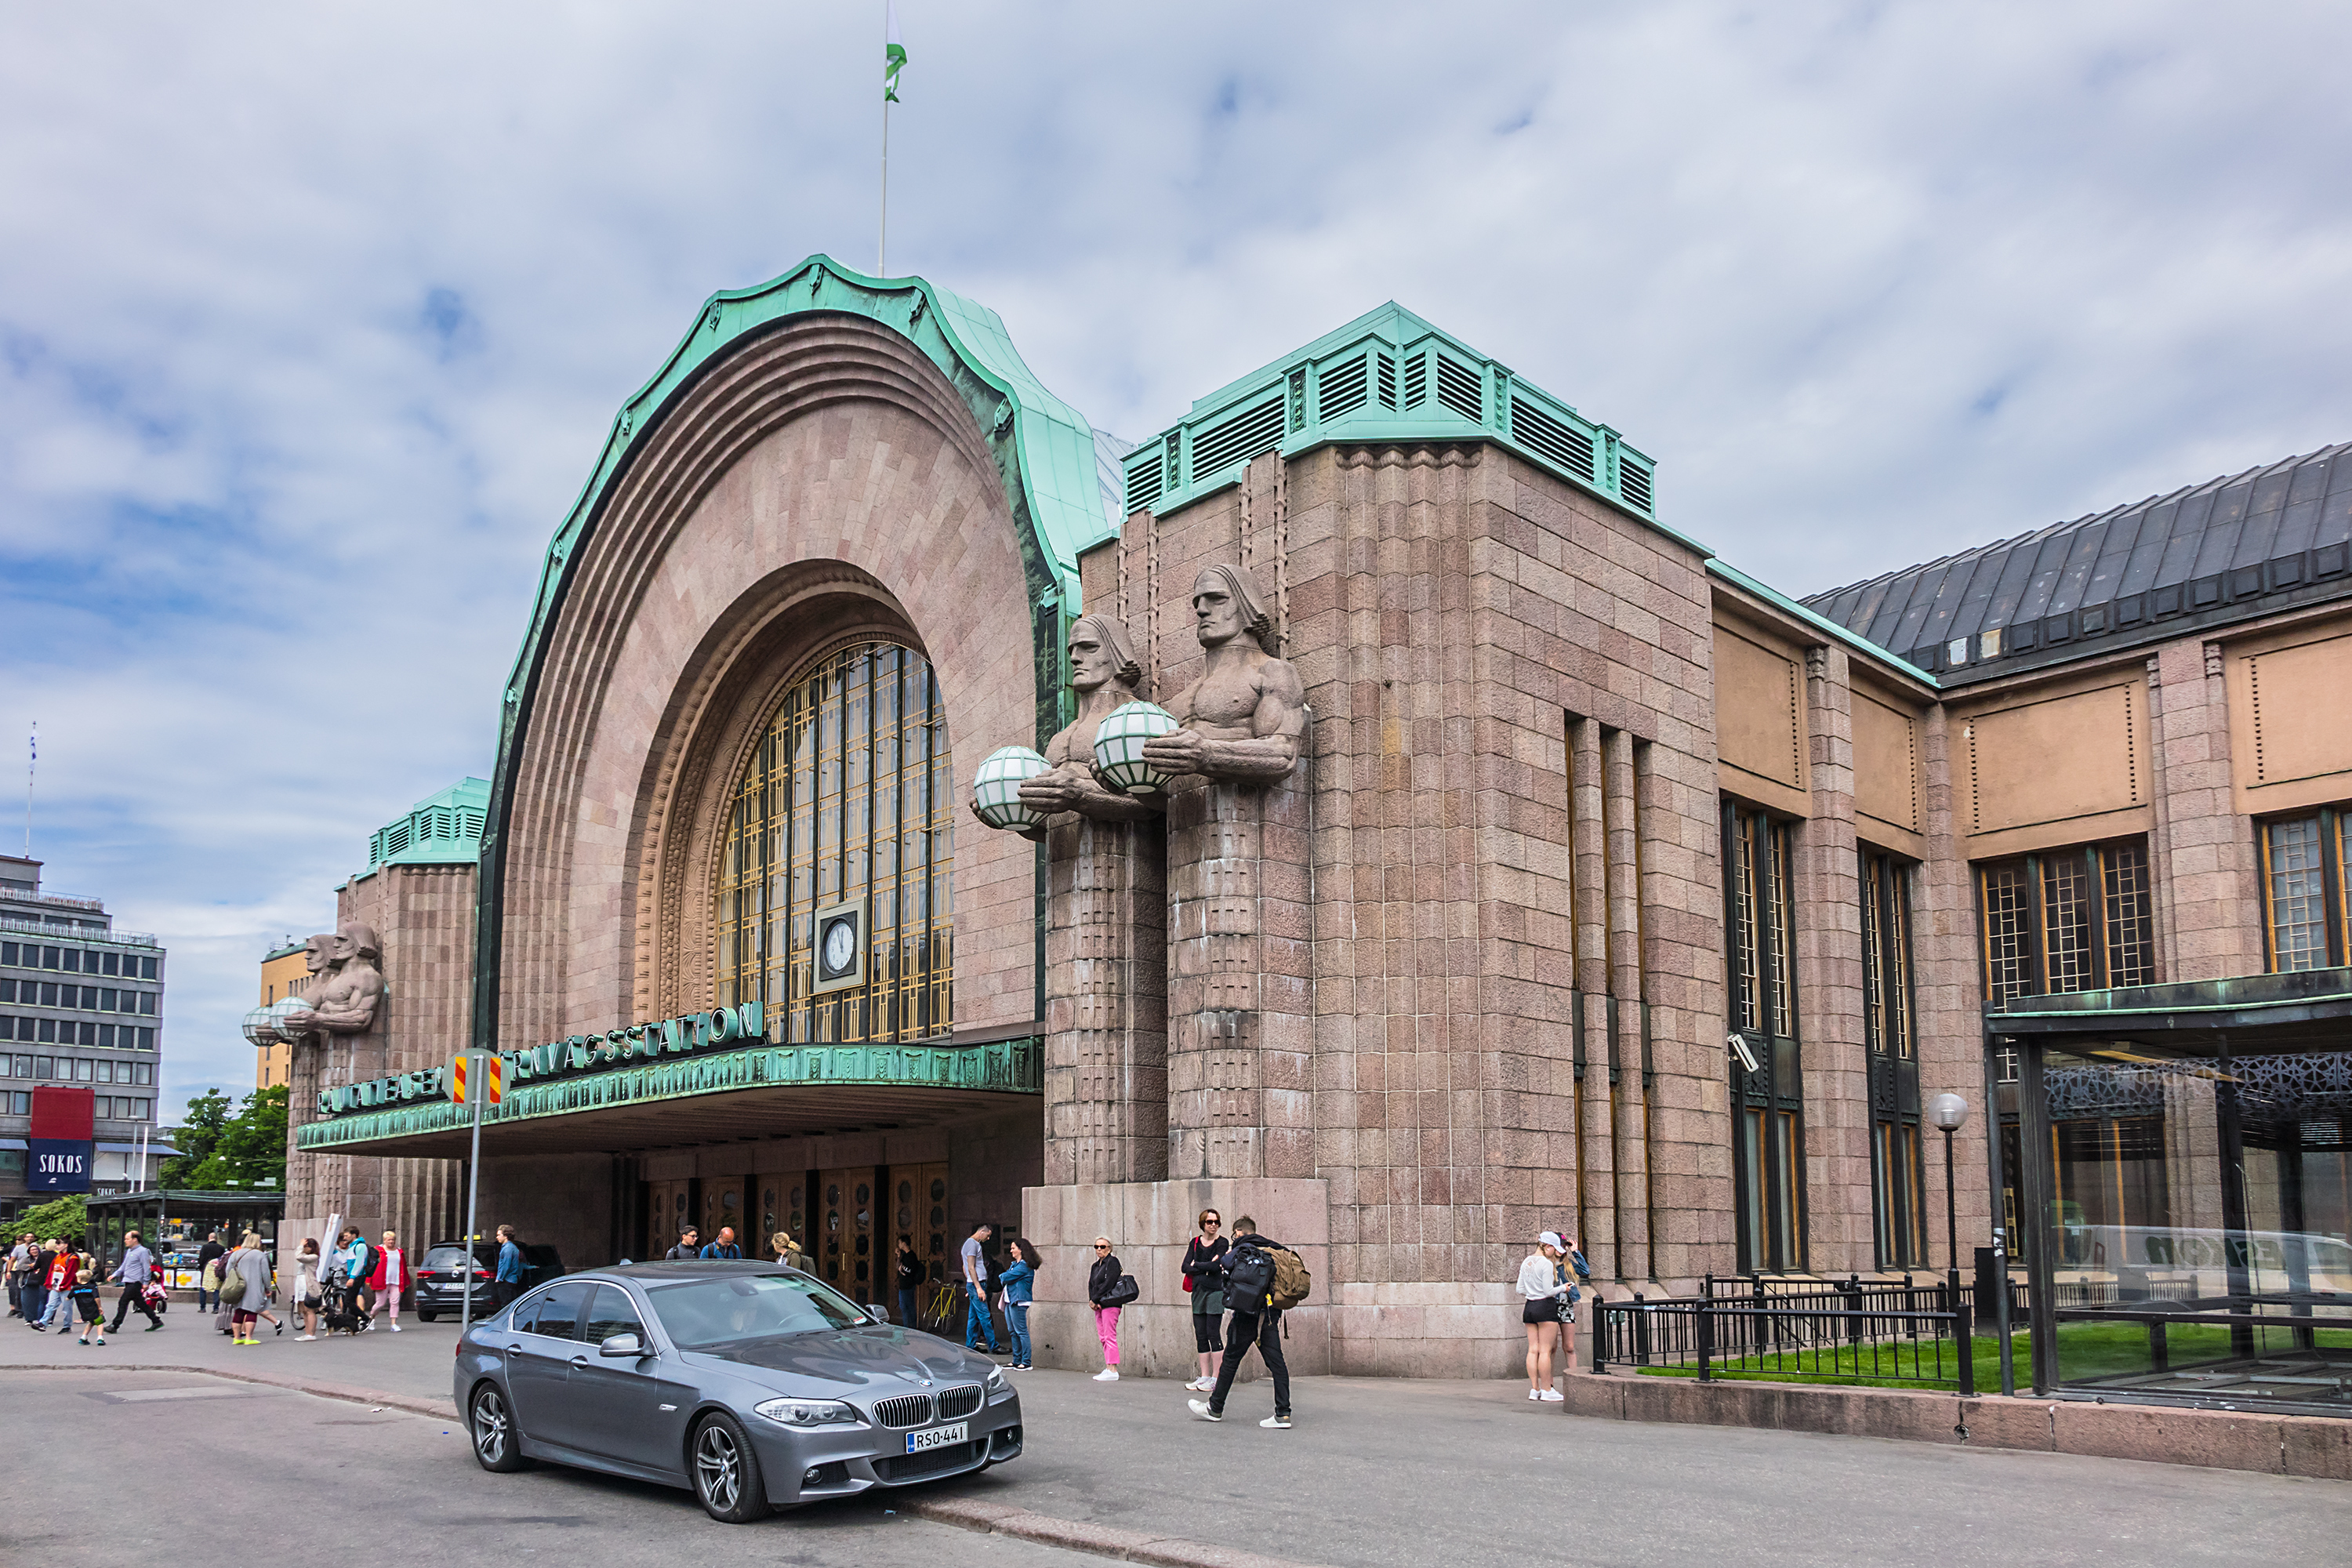 Slide 11 of 29: HELSINKI, FINLAND - JUNE 19, 2017: Helsinki Central railway station (Rautatieasema, architect Eliel Saarinen, 1919) with neo classical clock tower and stone figures holding lamps.; Shutterstock ID 676225486; Purchase Order: -